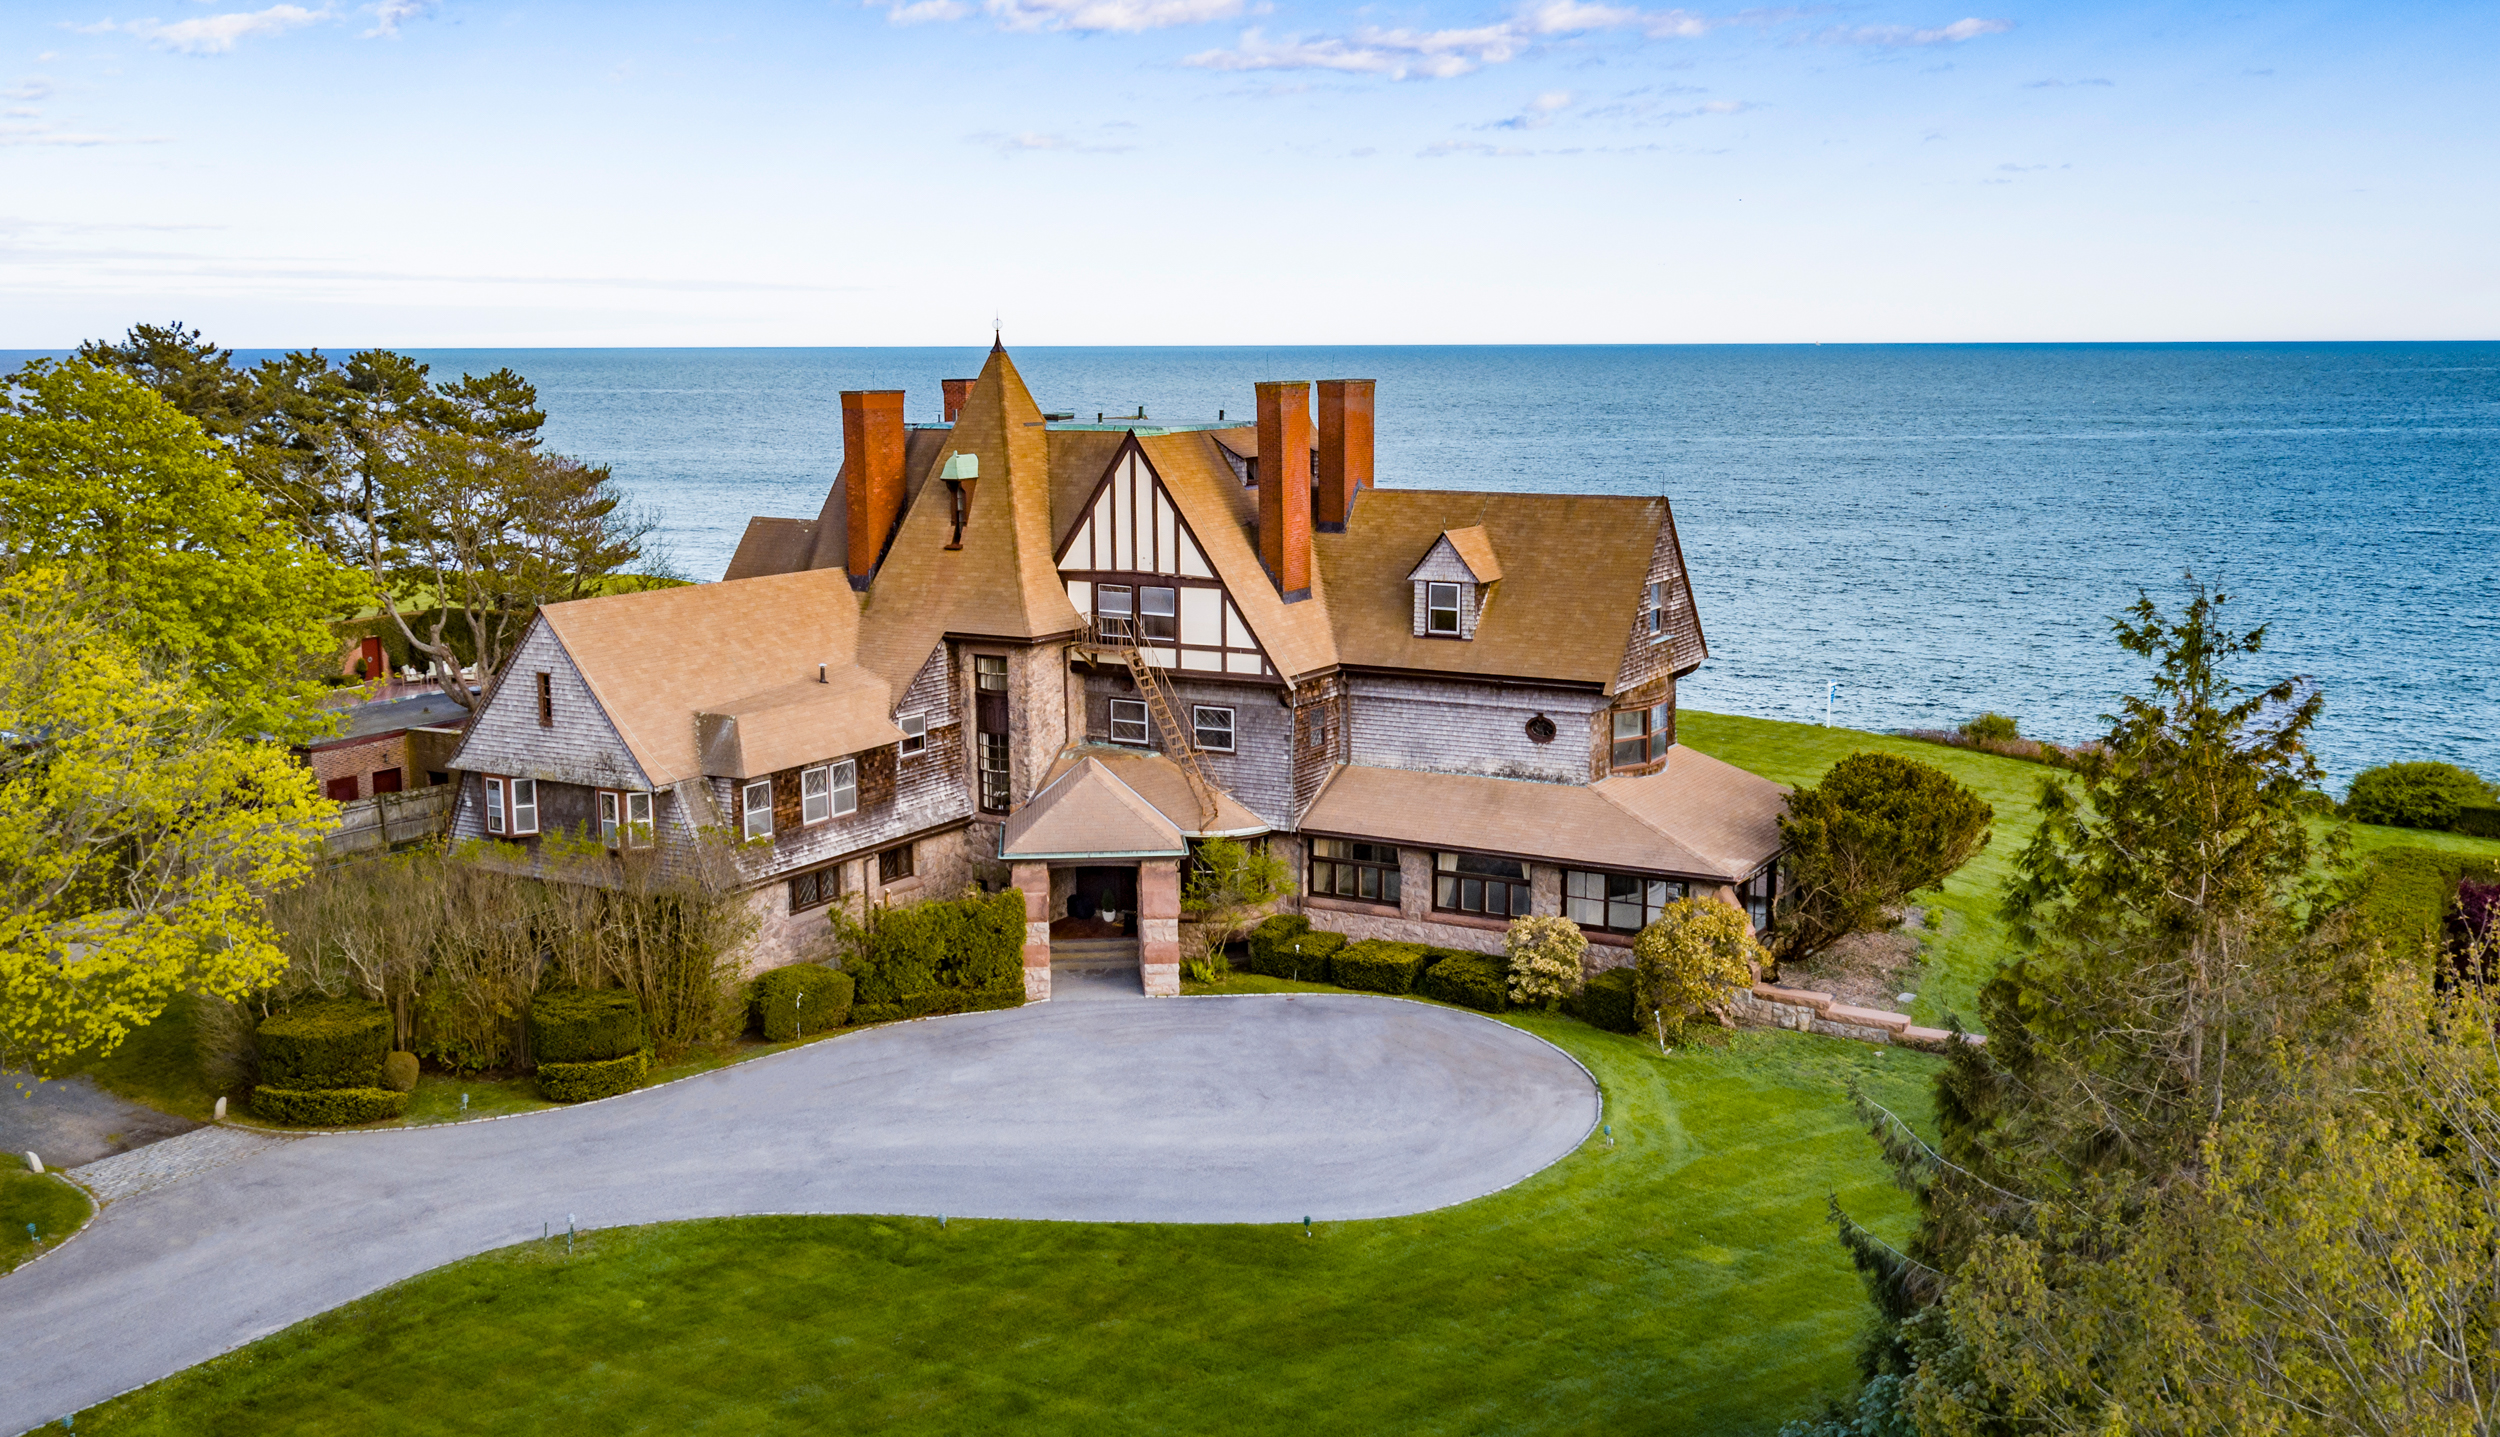 'Midcliff' Sold, Represents Second Highest Sale in Newport This Year